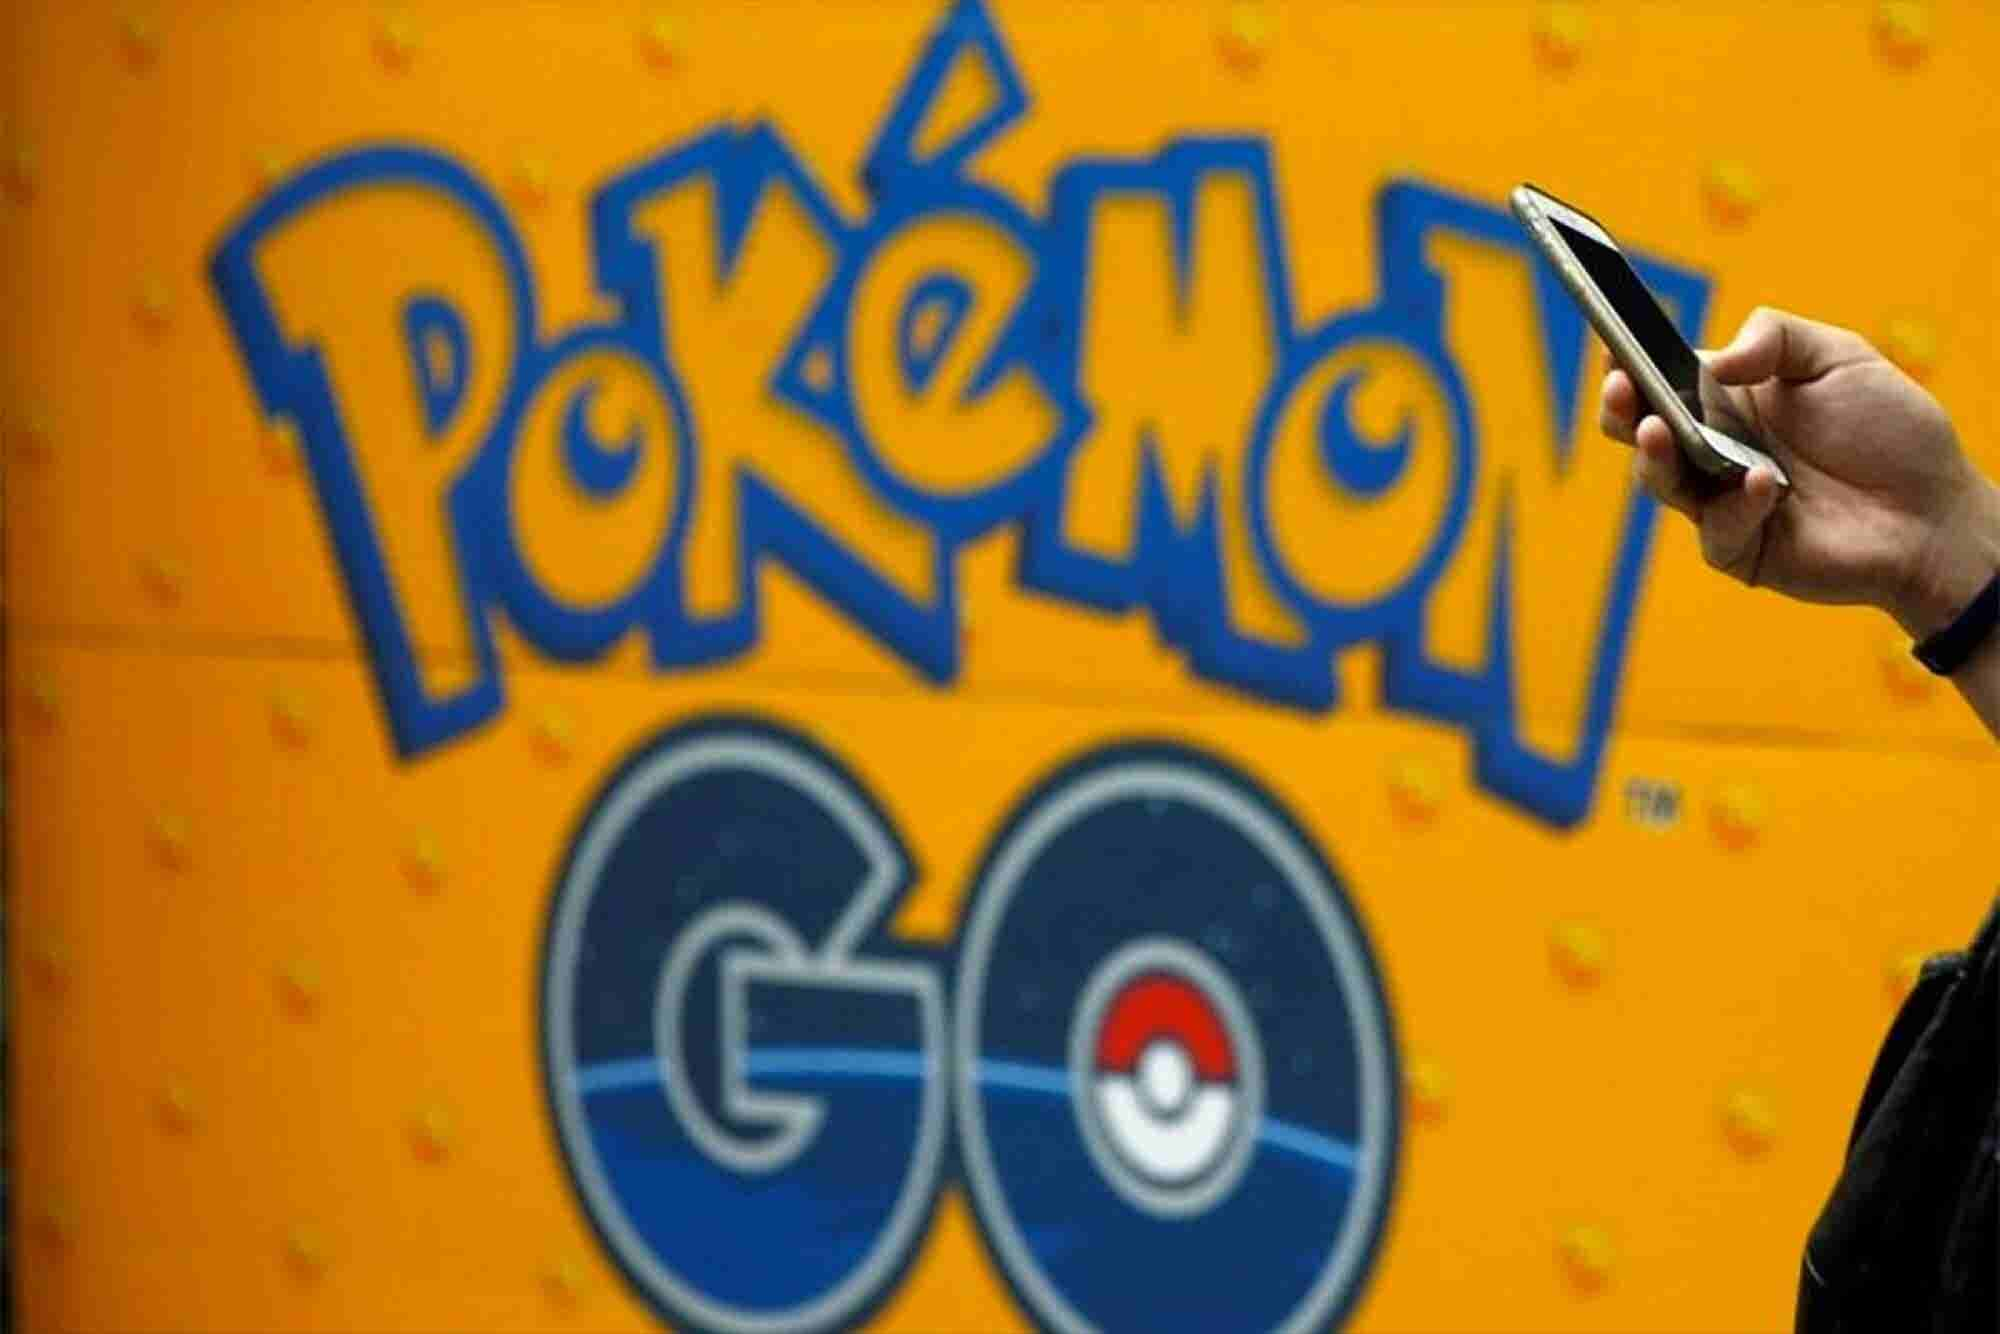 Nintendo Posts First-Quarter Loss, Delays Launch of Accessory for Pokémon Go